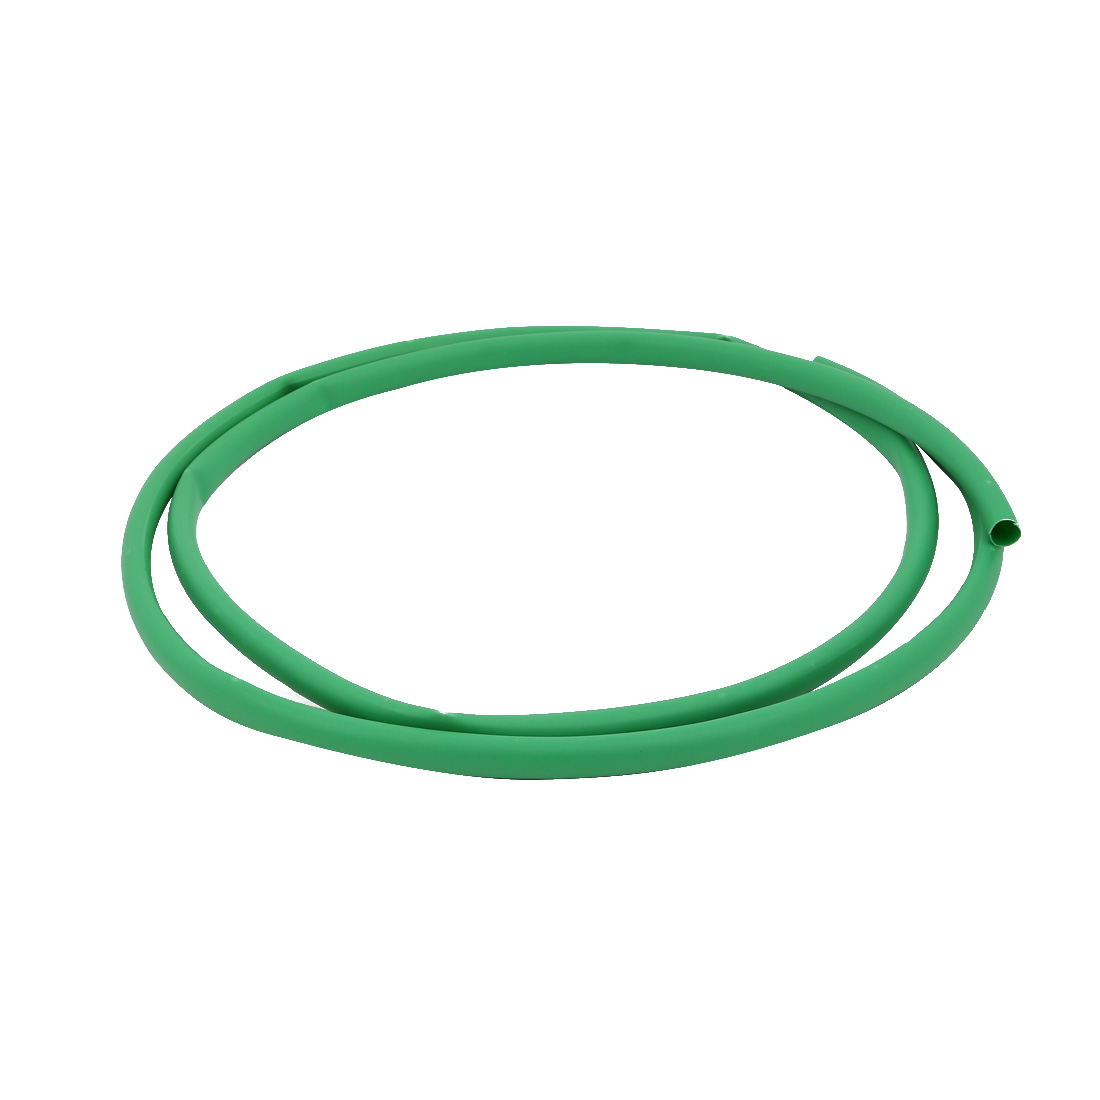 2M 0.37in Inner Dia Polyolefin Flame Retardant Tube Green for Wire Repairing